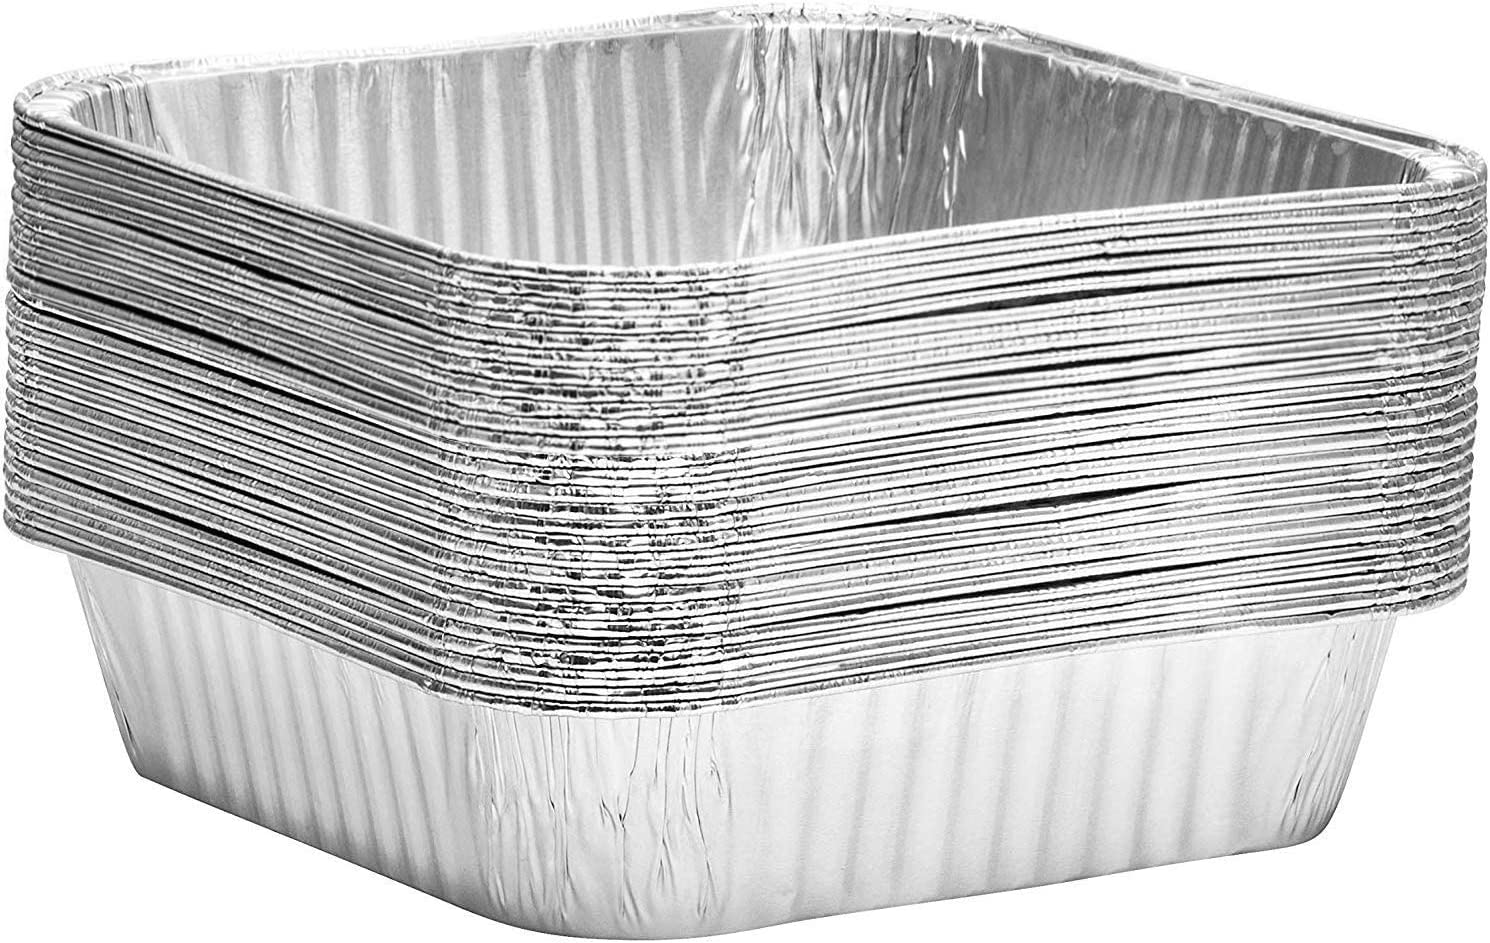 Broiling Propack Square baking Pans 8x8 Disposable Aluminum Foil Baking Tins For Baking Roasting Pack of 30 Cooking